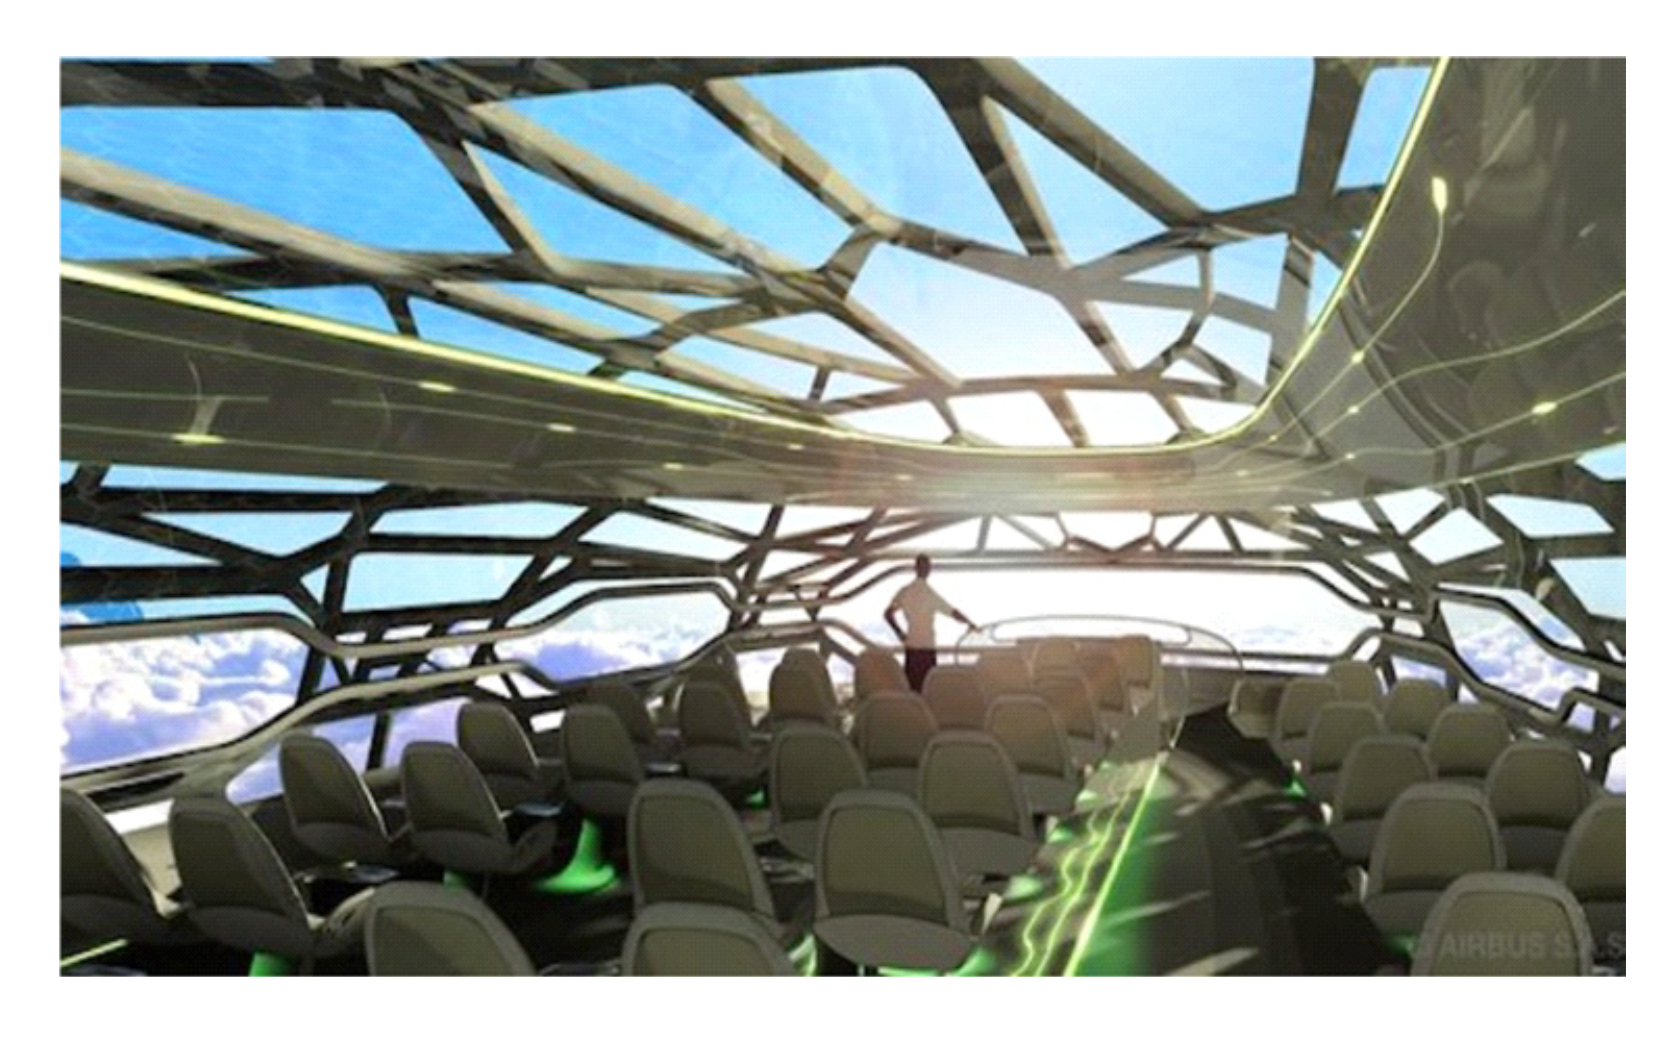 The 3D printed Airbus concept plane, here by 2050